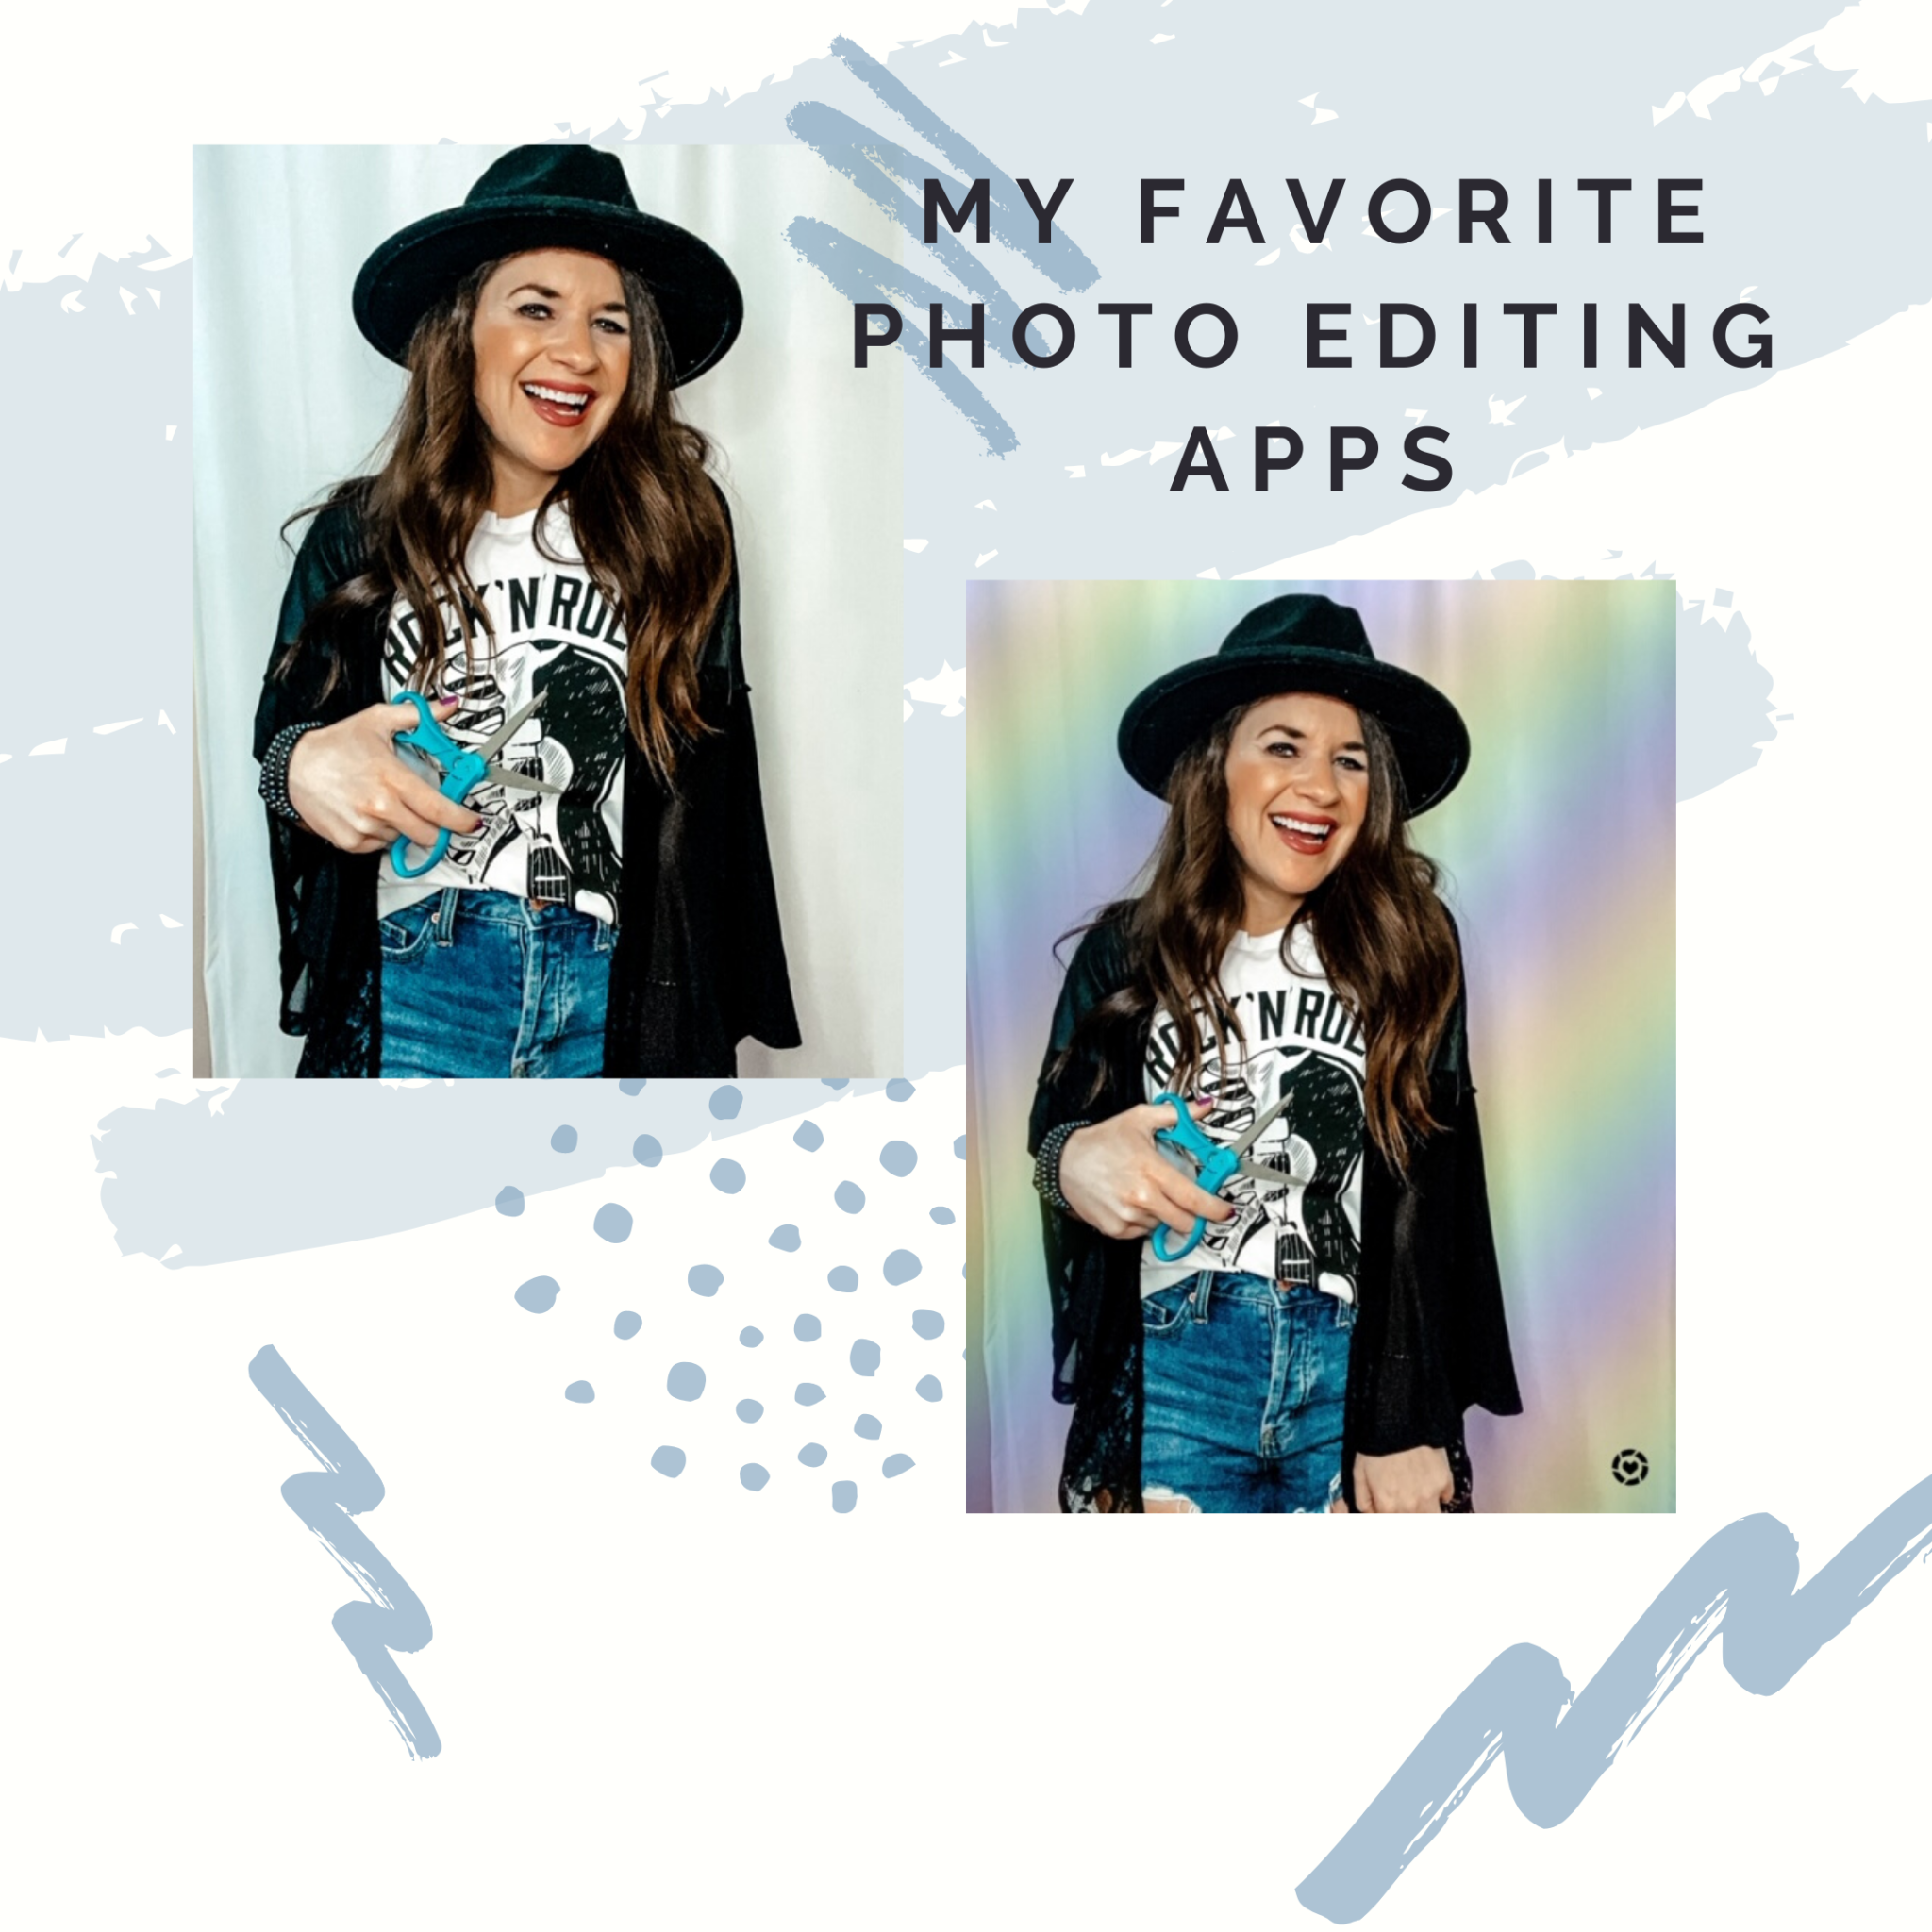 My favorite Photo Editing Apps